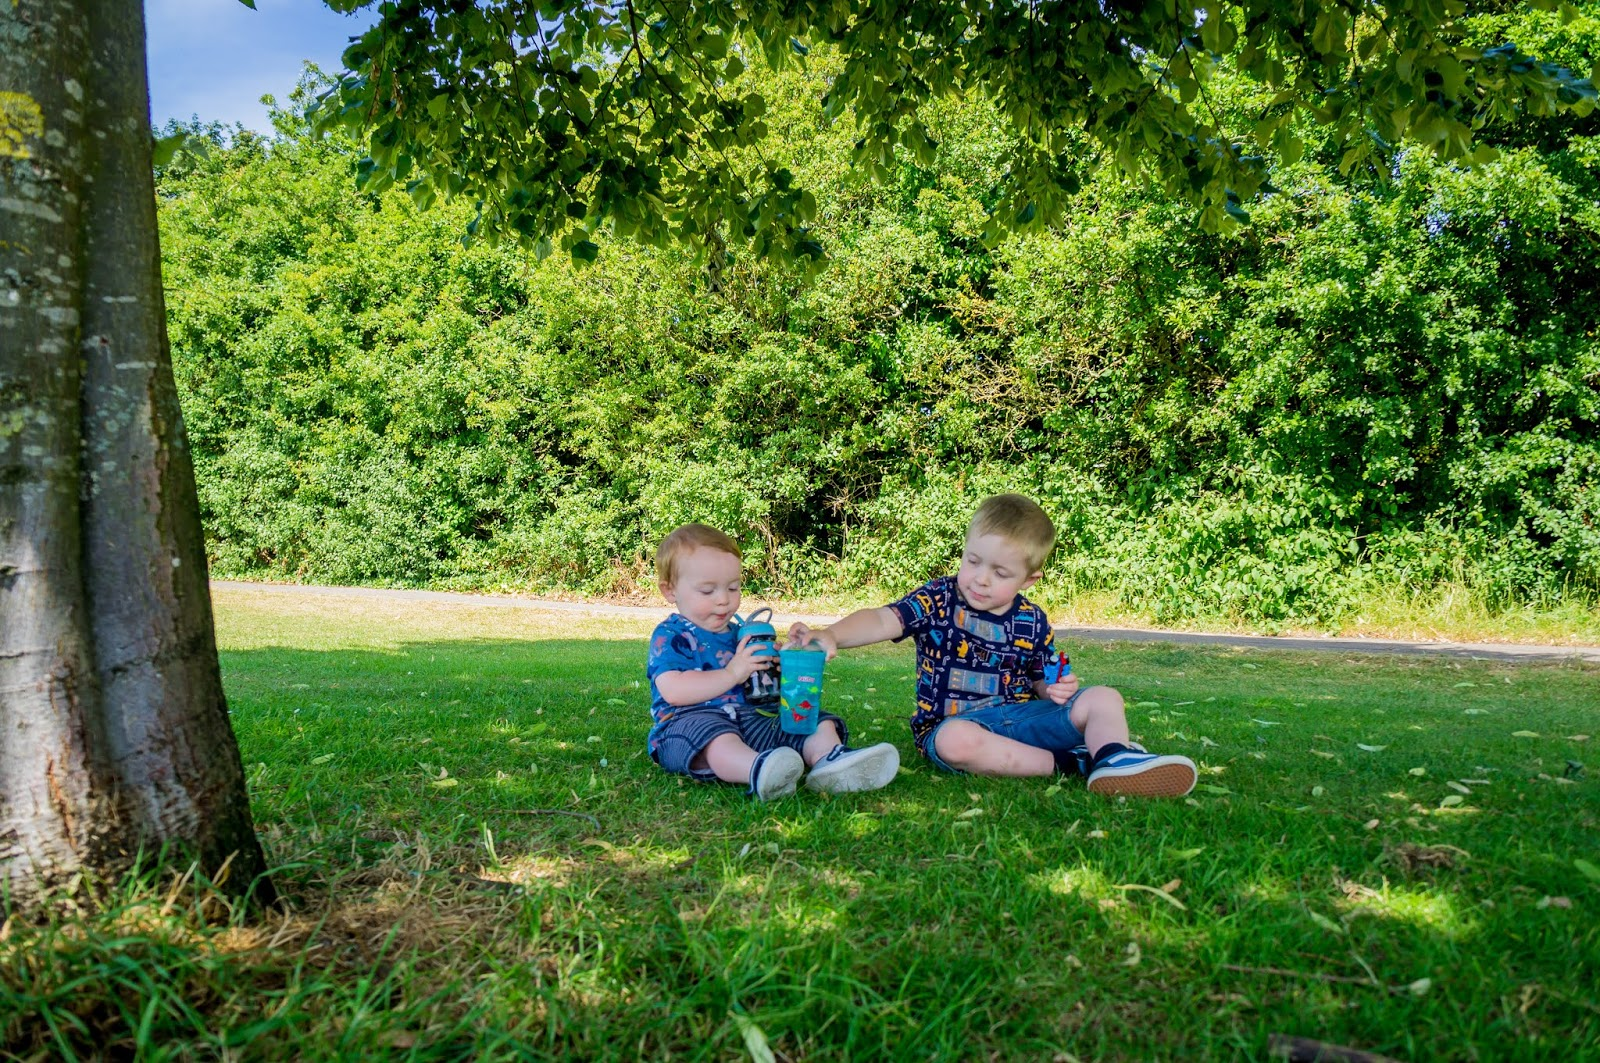 two boys sitting on grass under a tree in a park